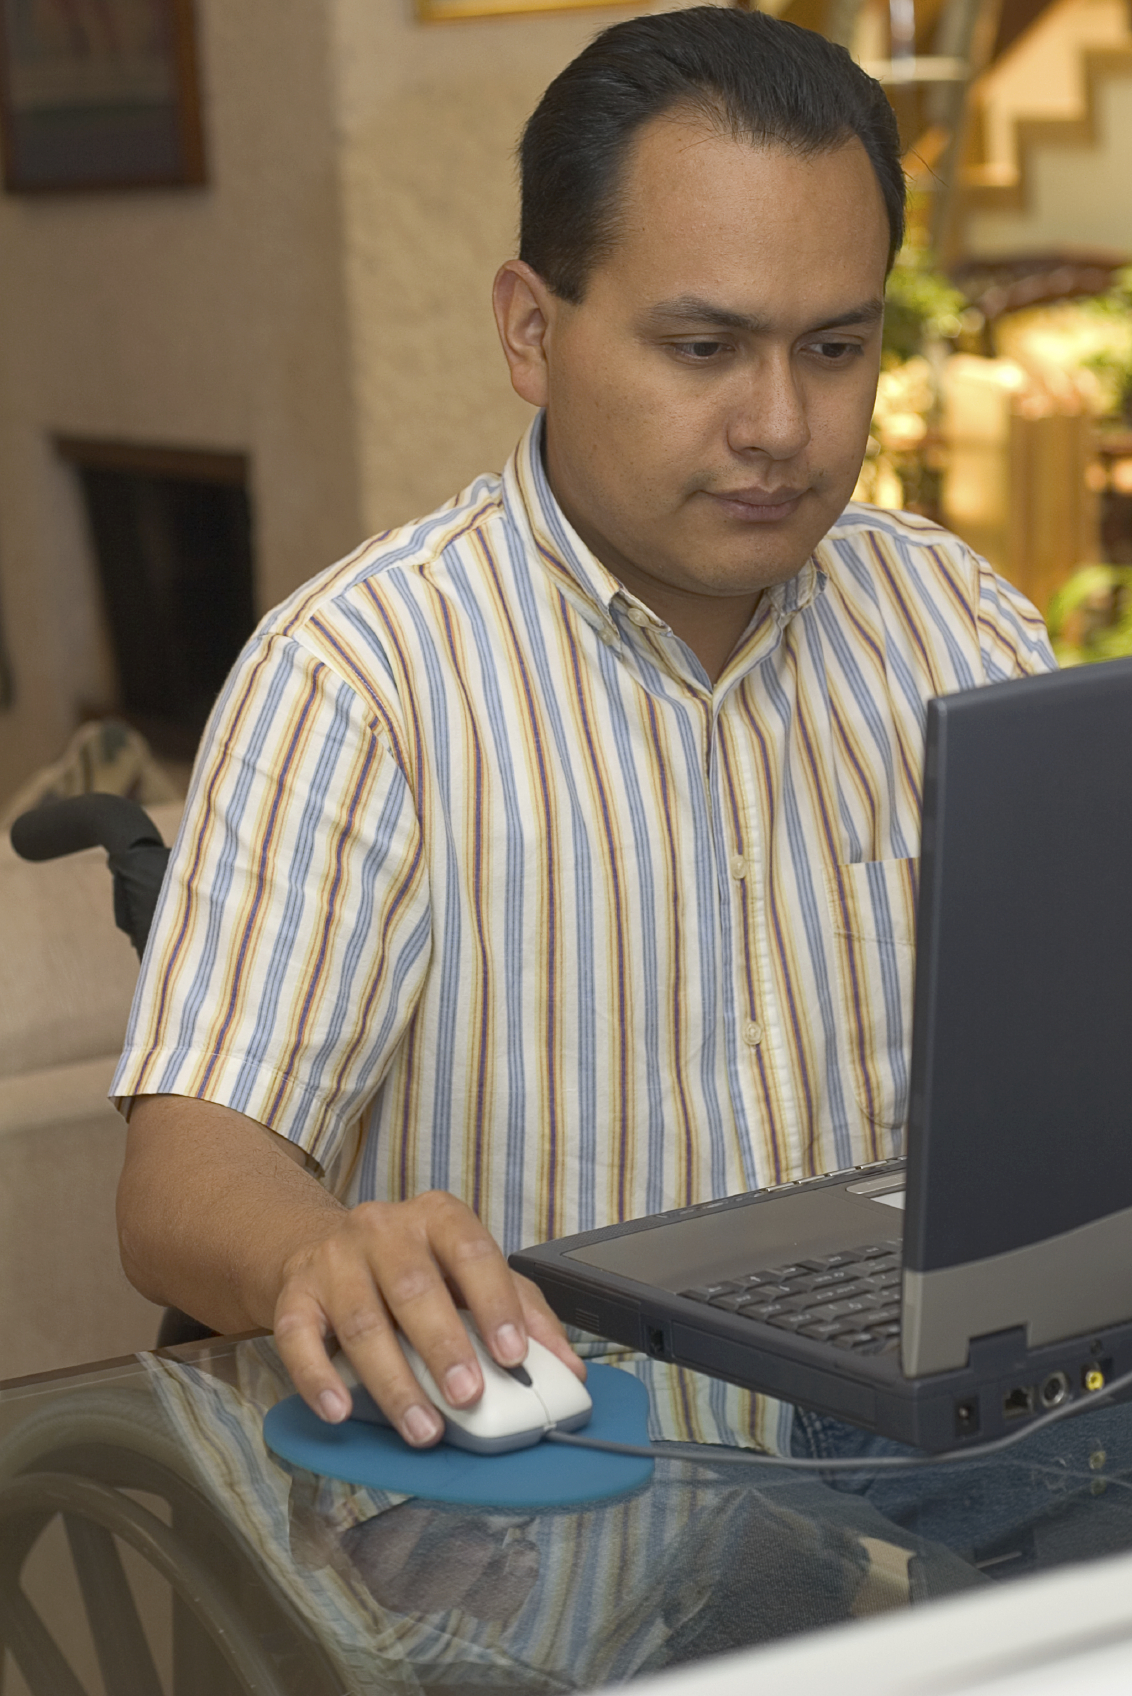 NWS Minority in a wheelchair at computer